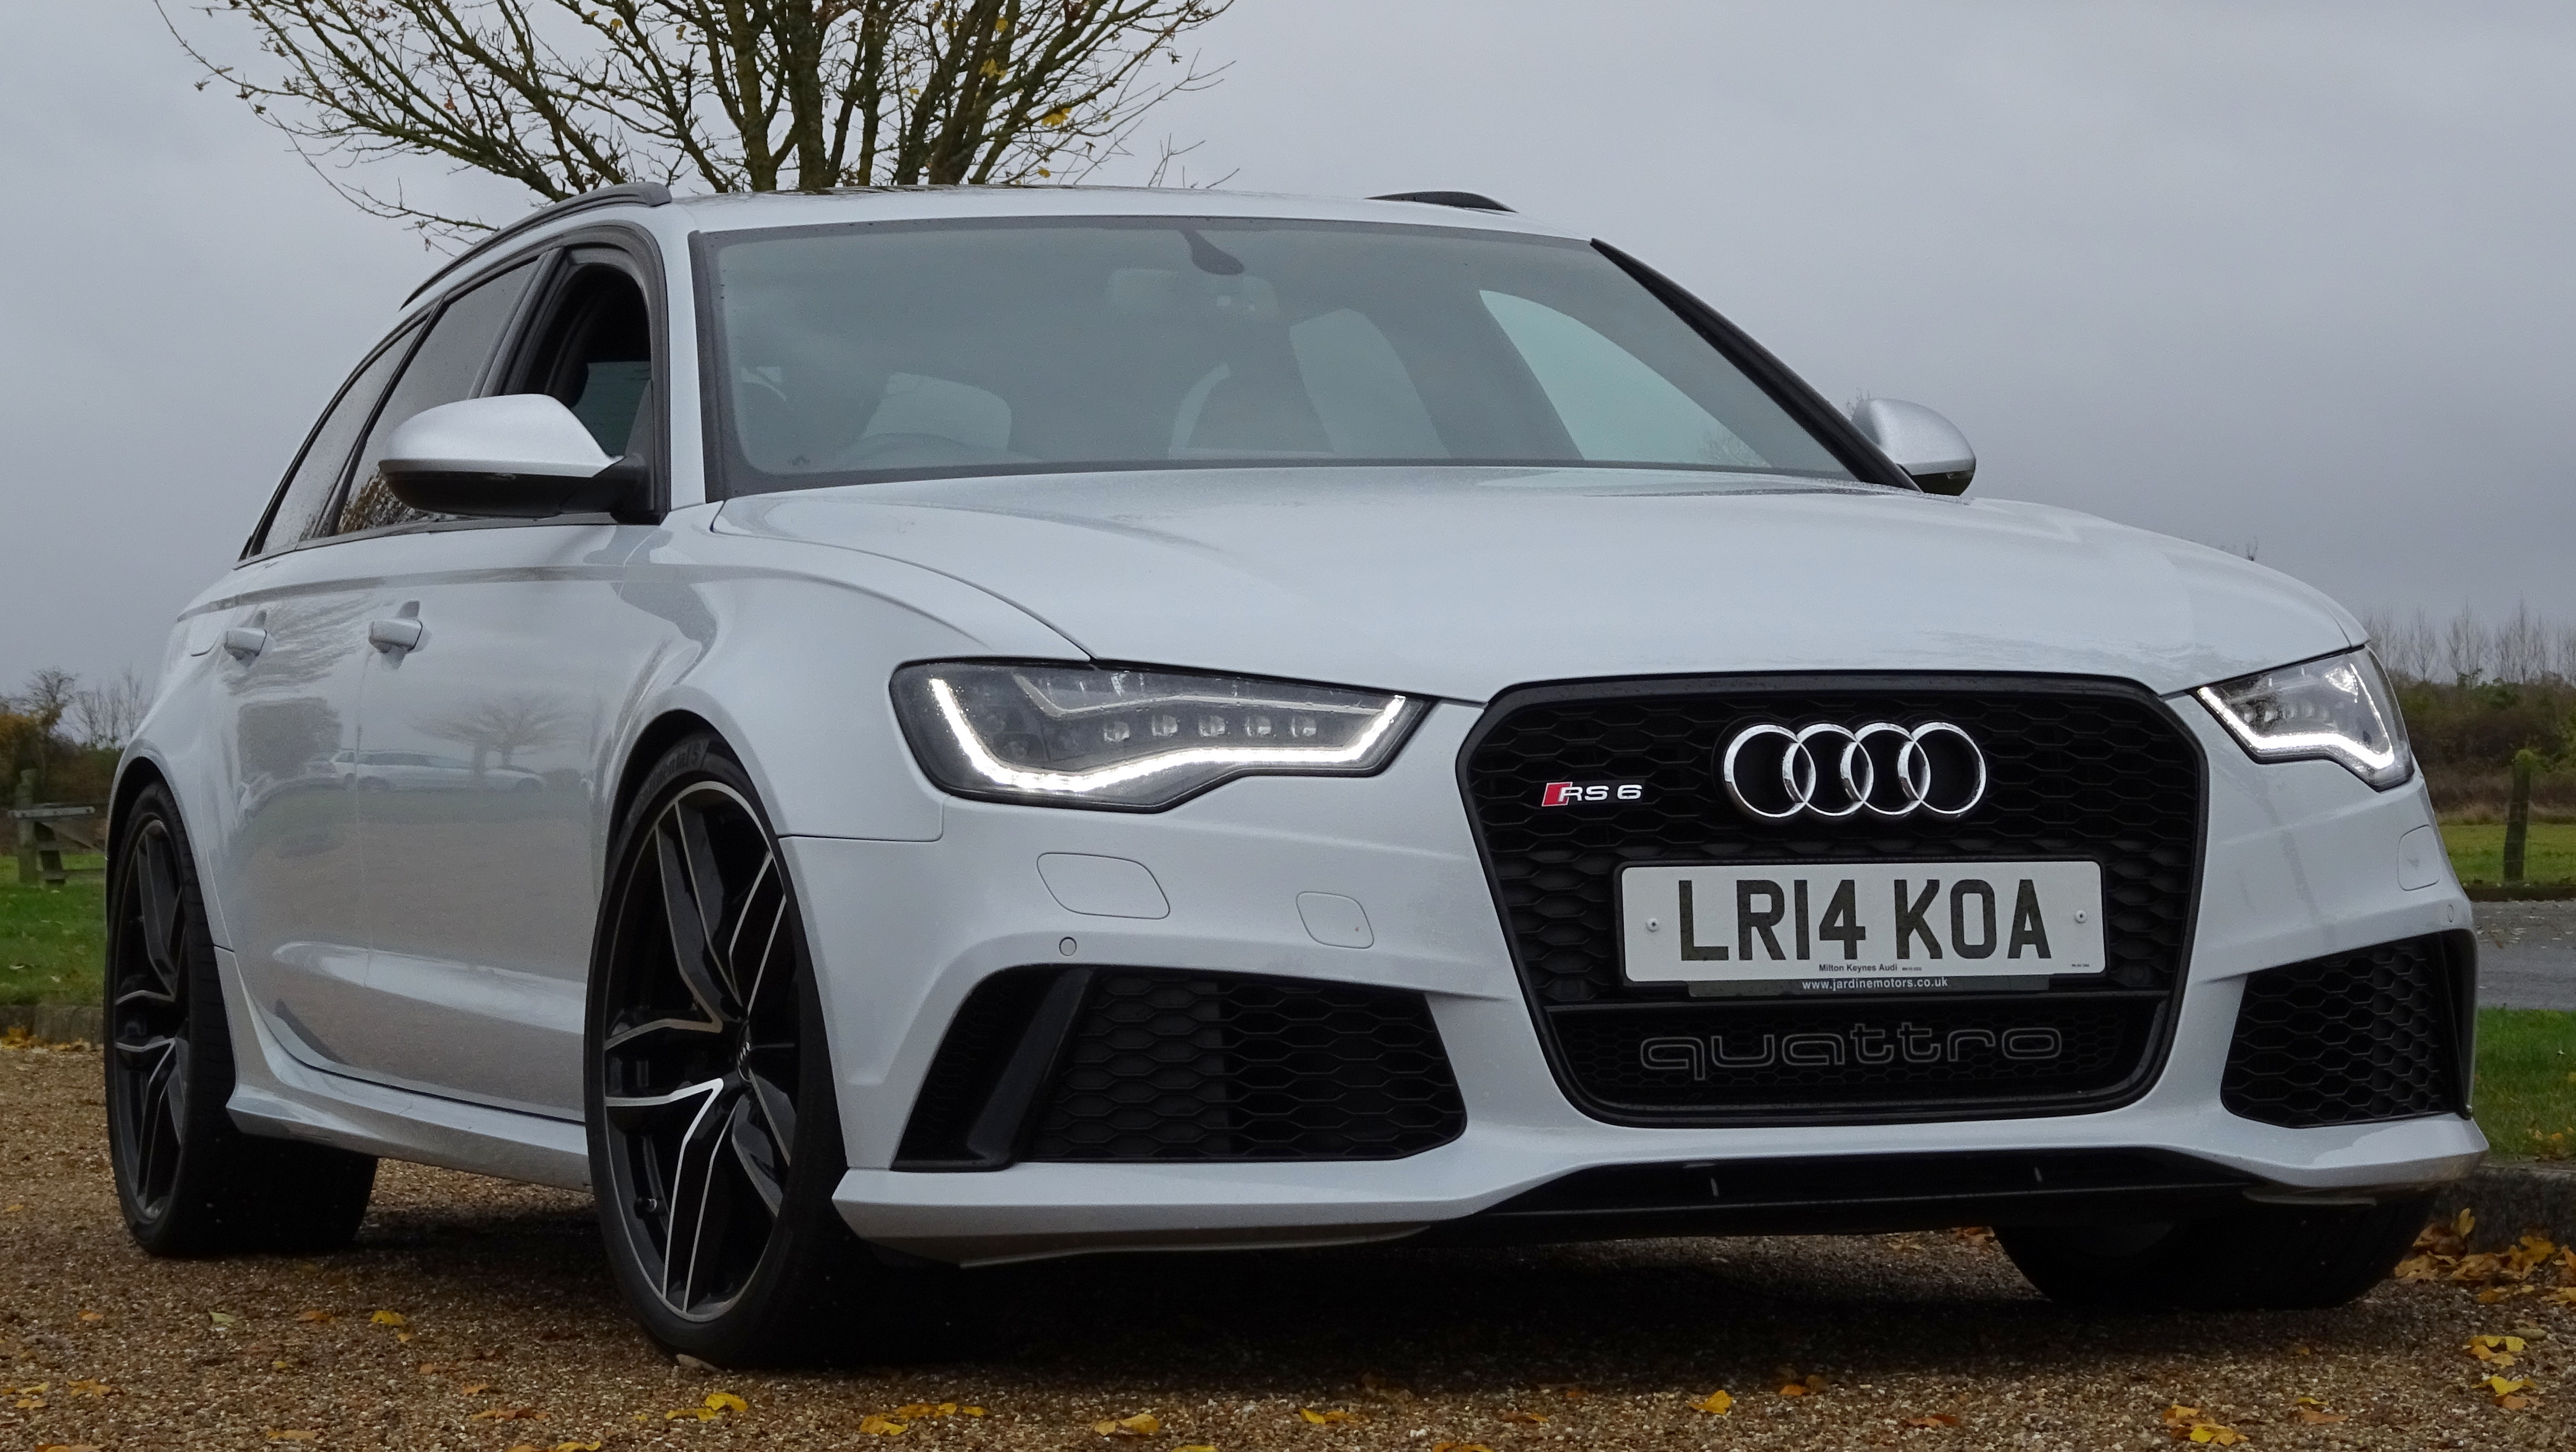 2014 Audi RS6 Video Walk Around